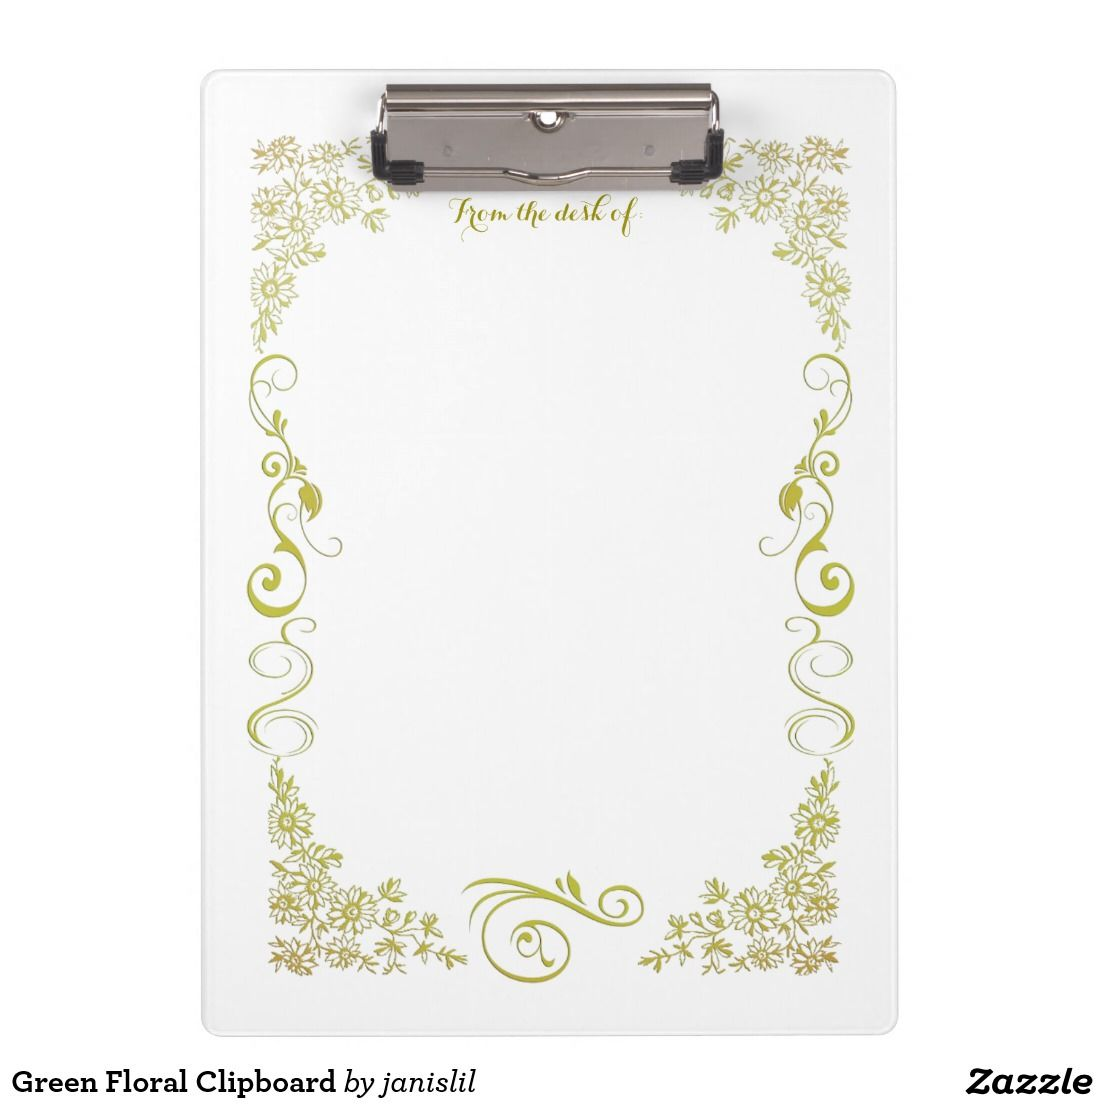 Green Floral Clipboard